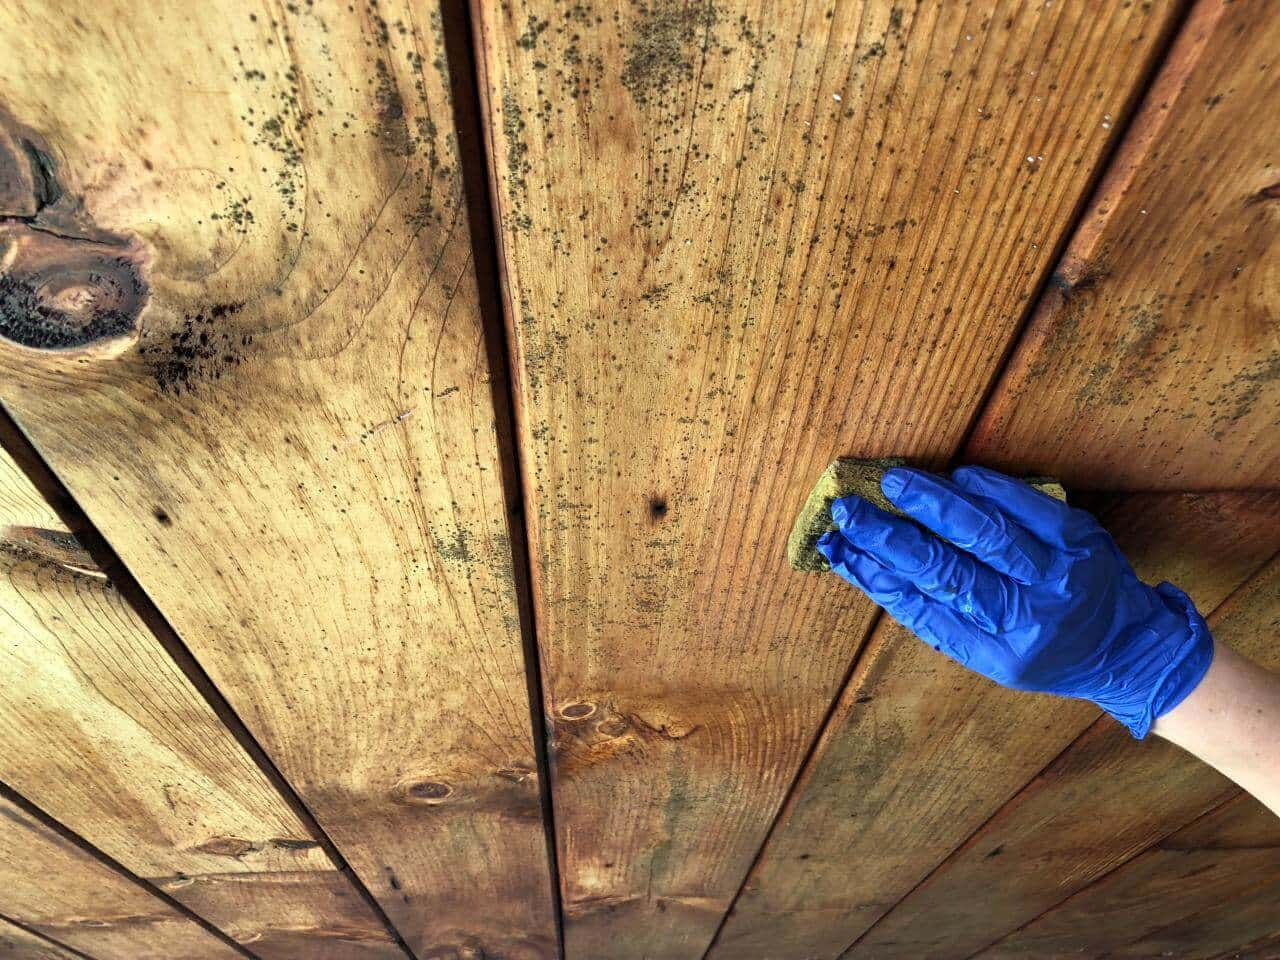 Wooden Mold Growth